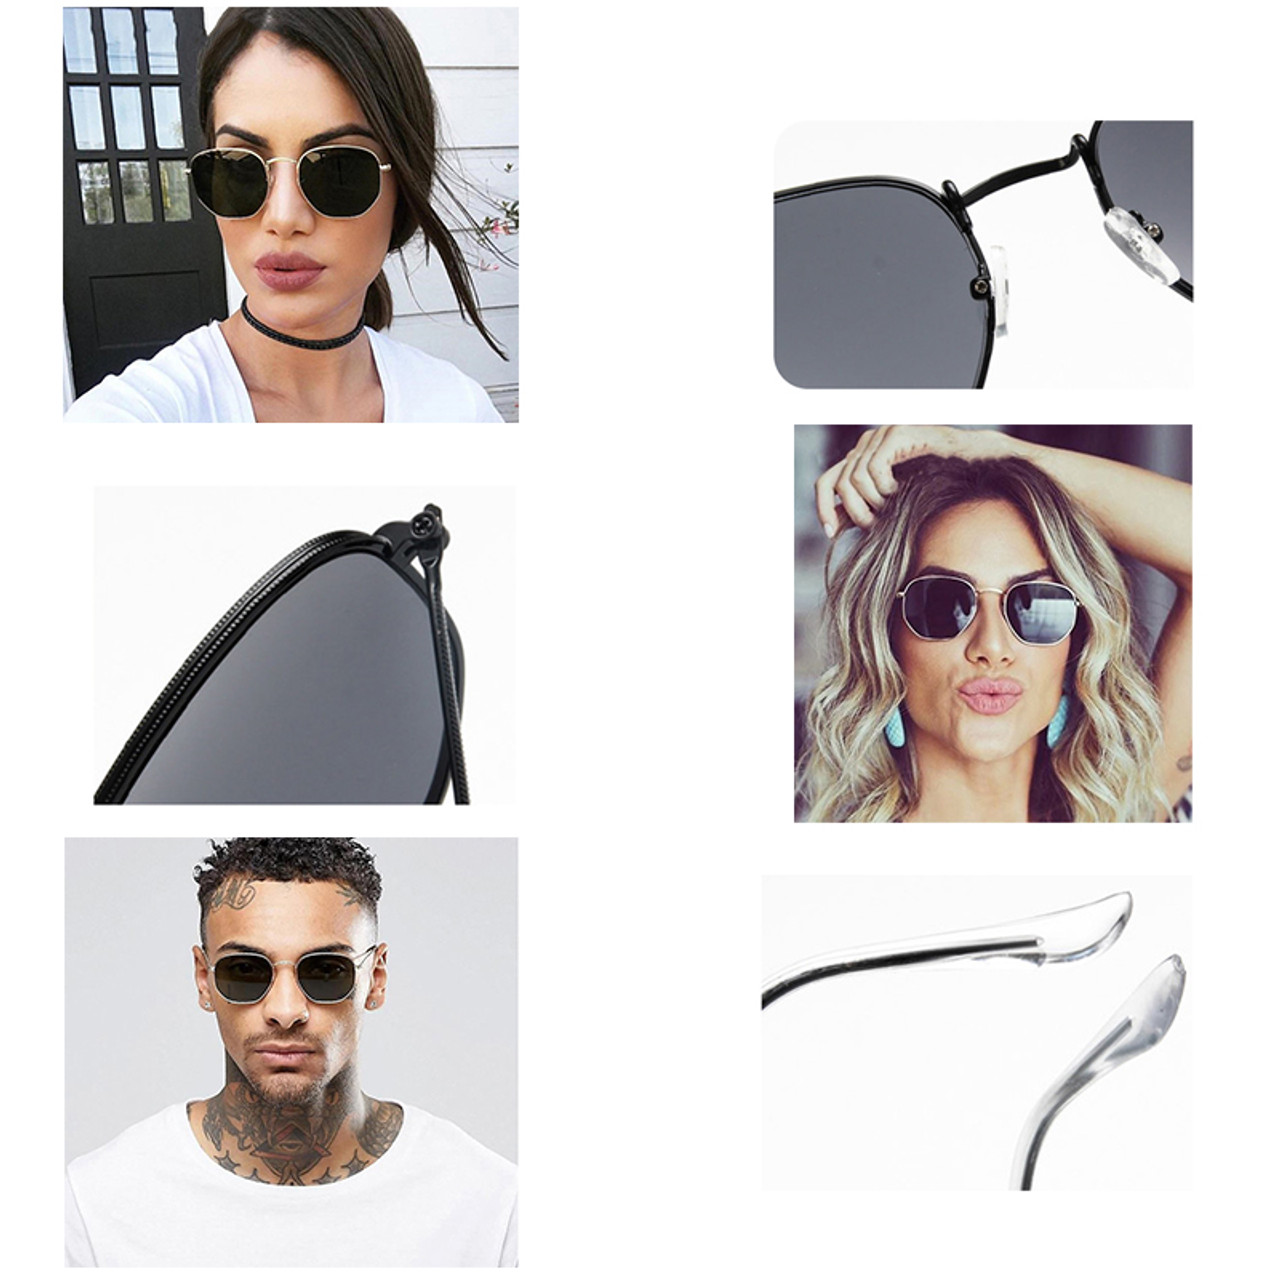 Mirror Frame Glasses Wish Club Small Sunglasses Women Vintage Sunglasses 2018 Polygon 90s Sun Glasses Lady Retro Mirror Eyewear Frame Glasses Oculos